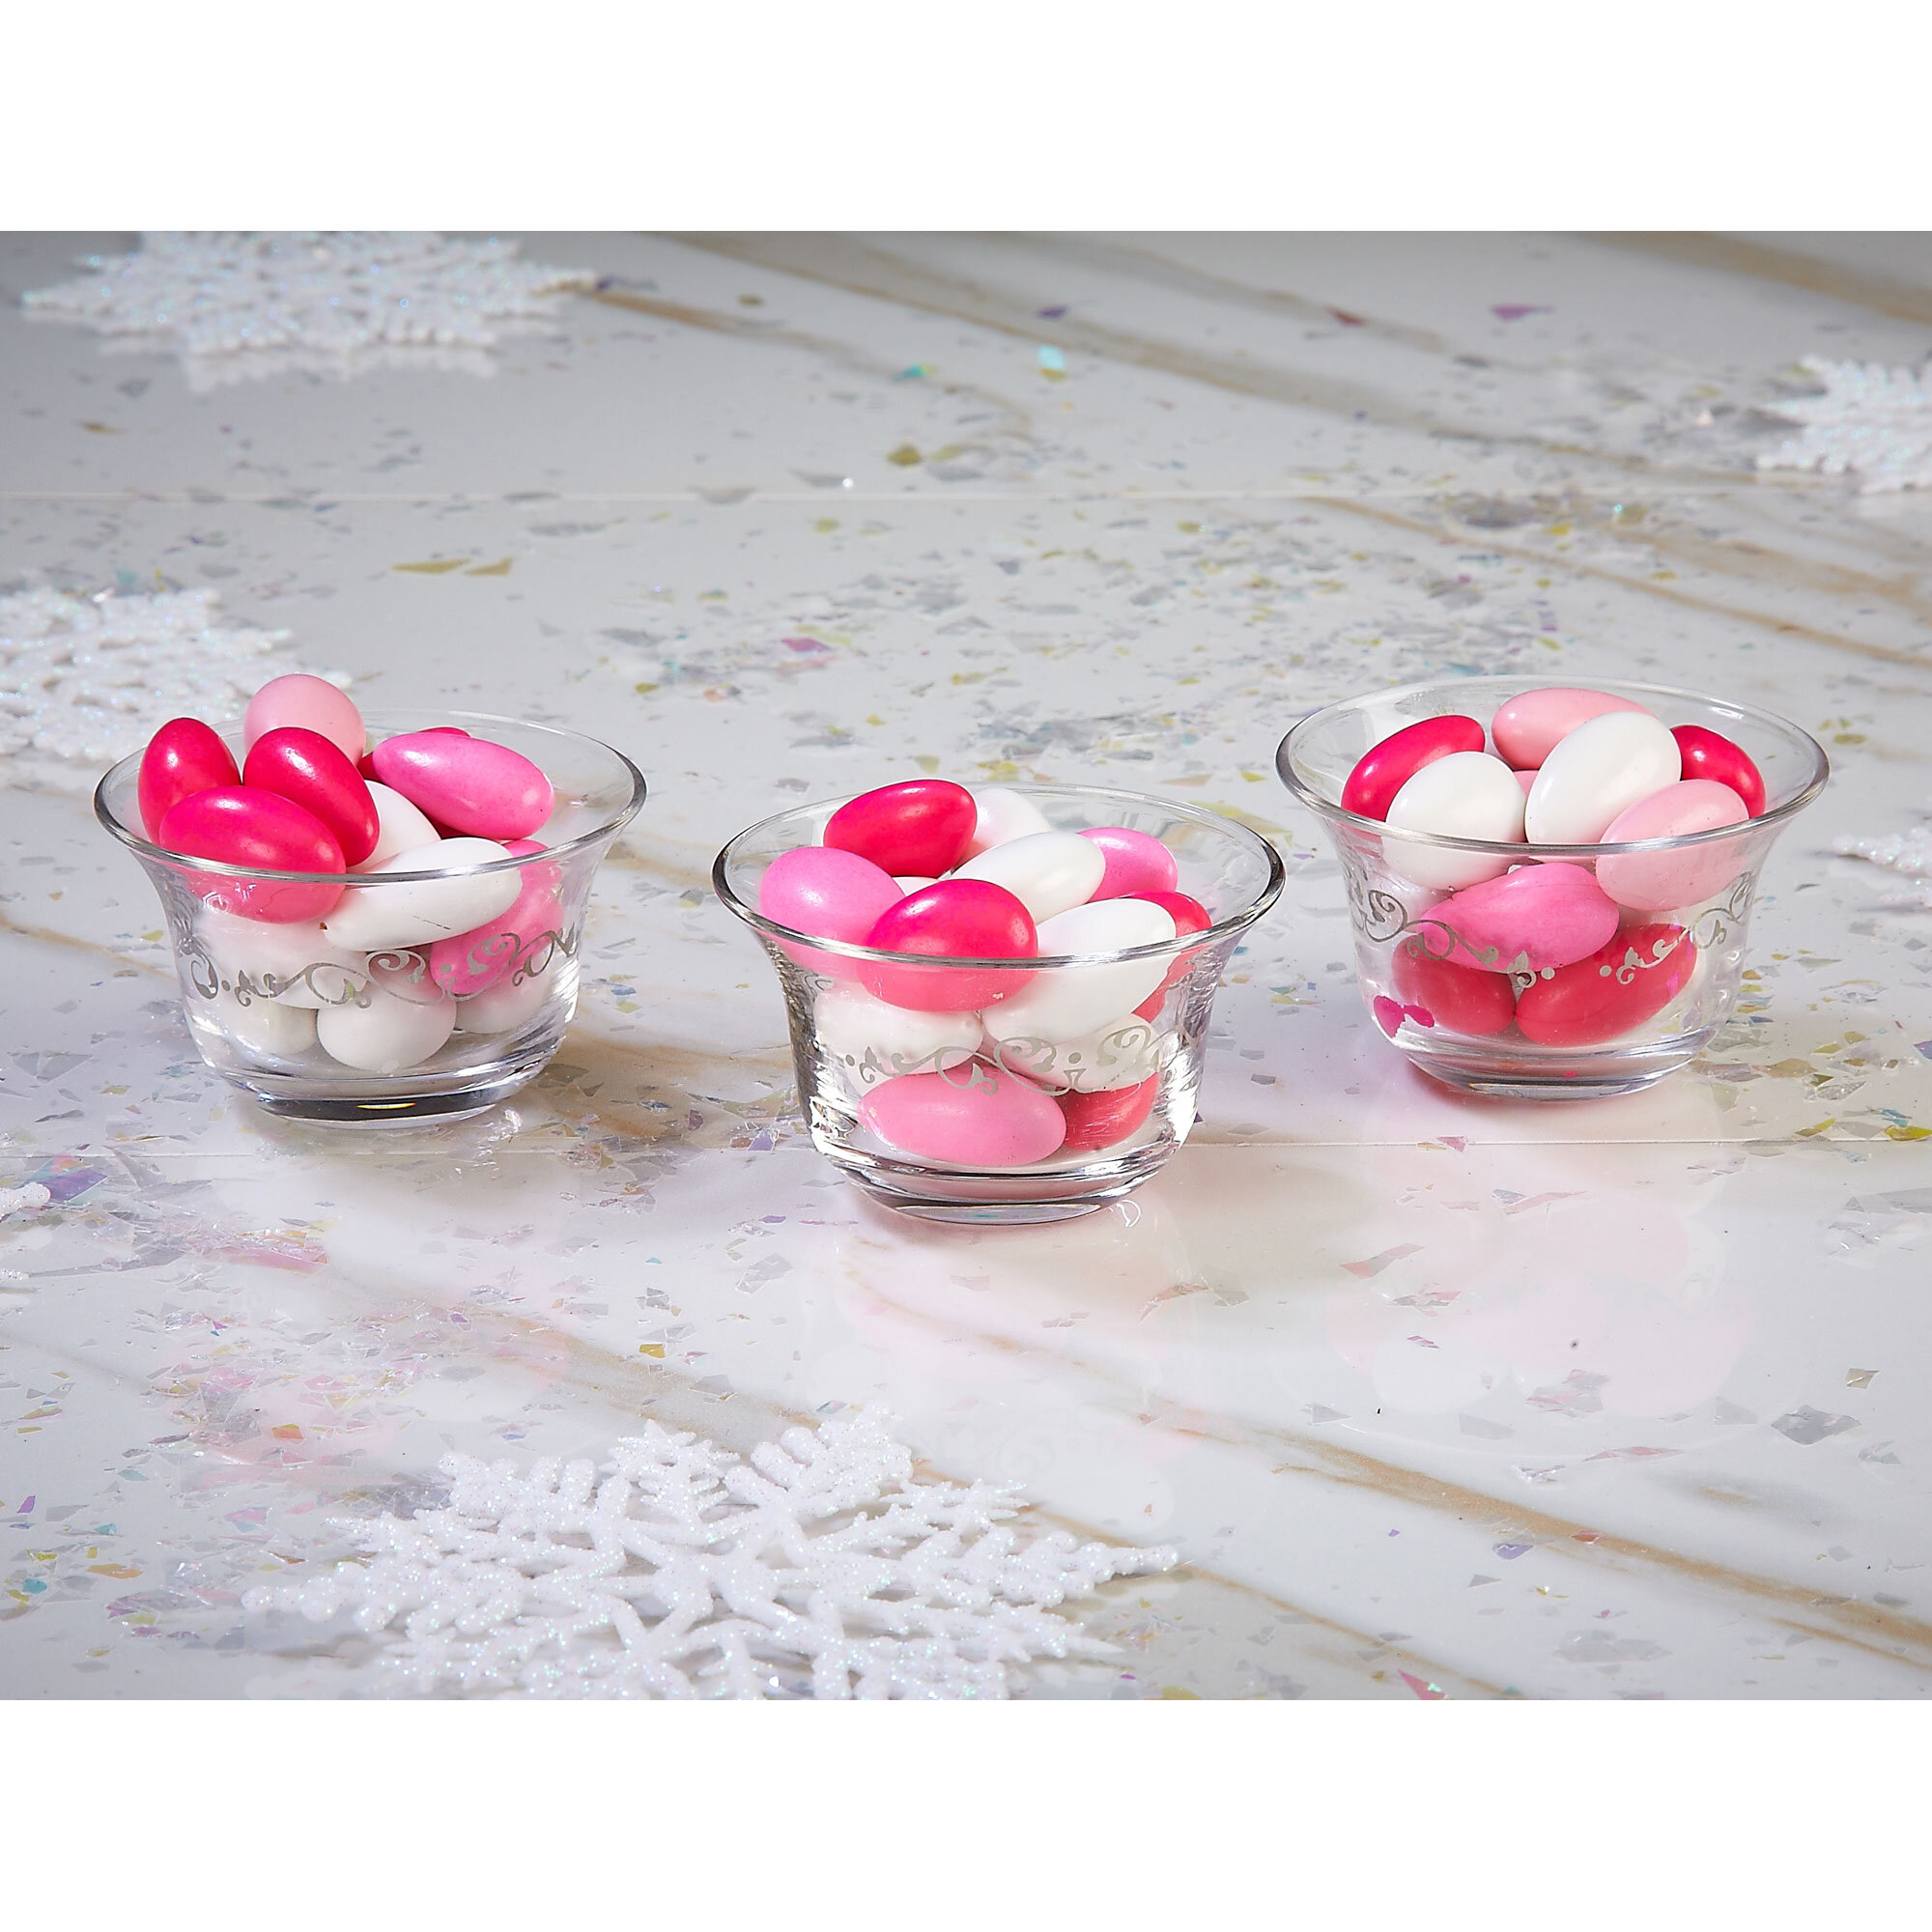 Glass House Of Hampton Serving Bowls You Ll Love In 2021 Wayfair